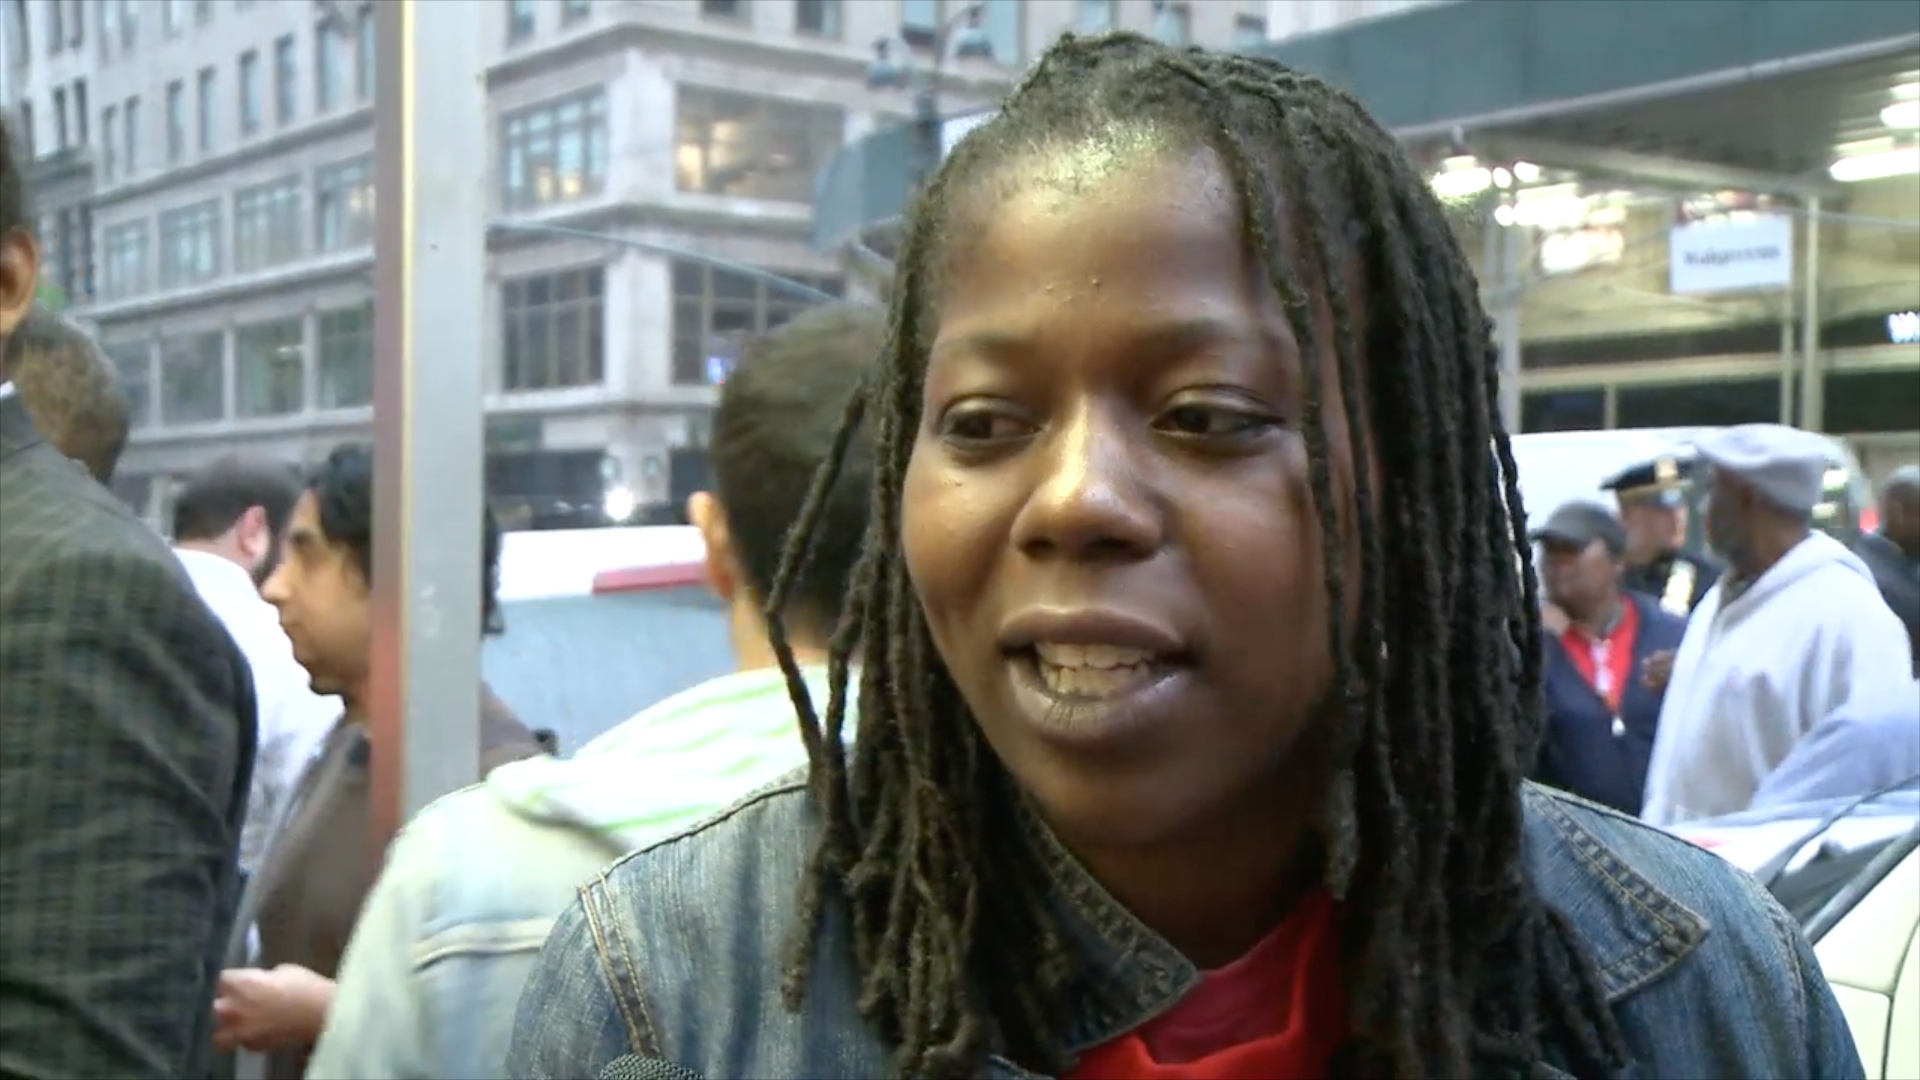 Fast food workers in New York join day of protests